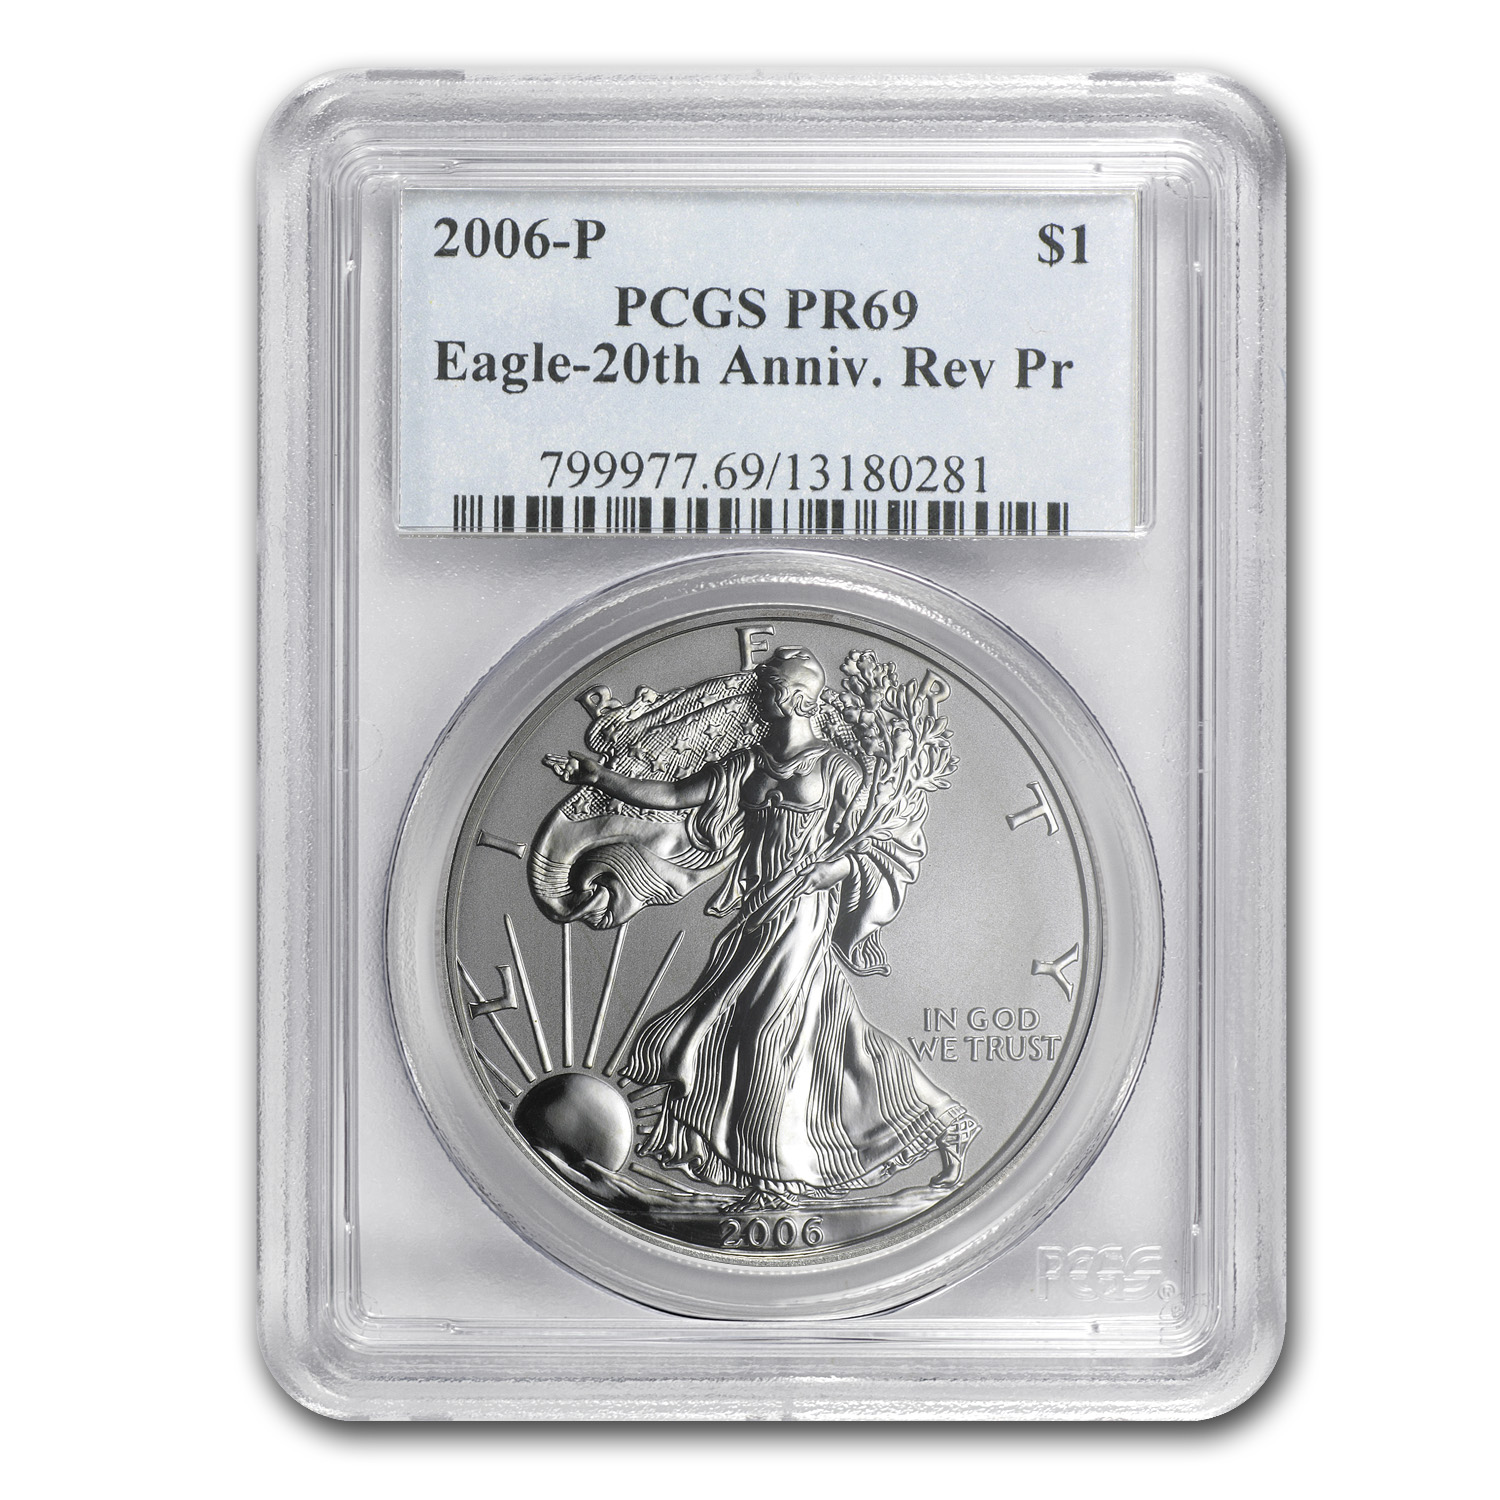 2006-P (Reverse Proof) Silver Eagle PR-69 PCGS 20th Anniv